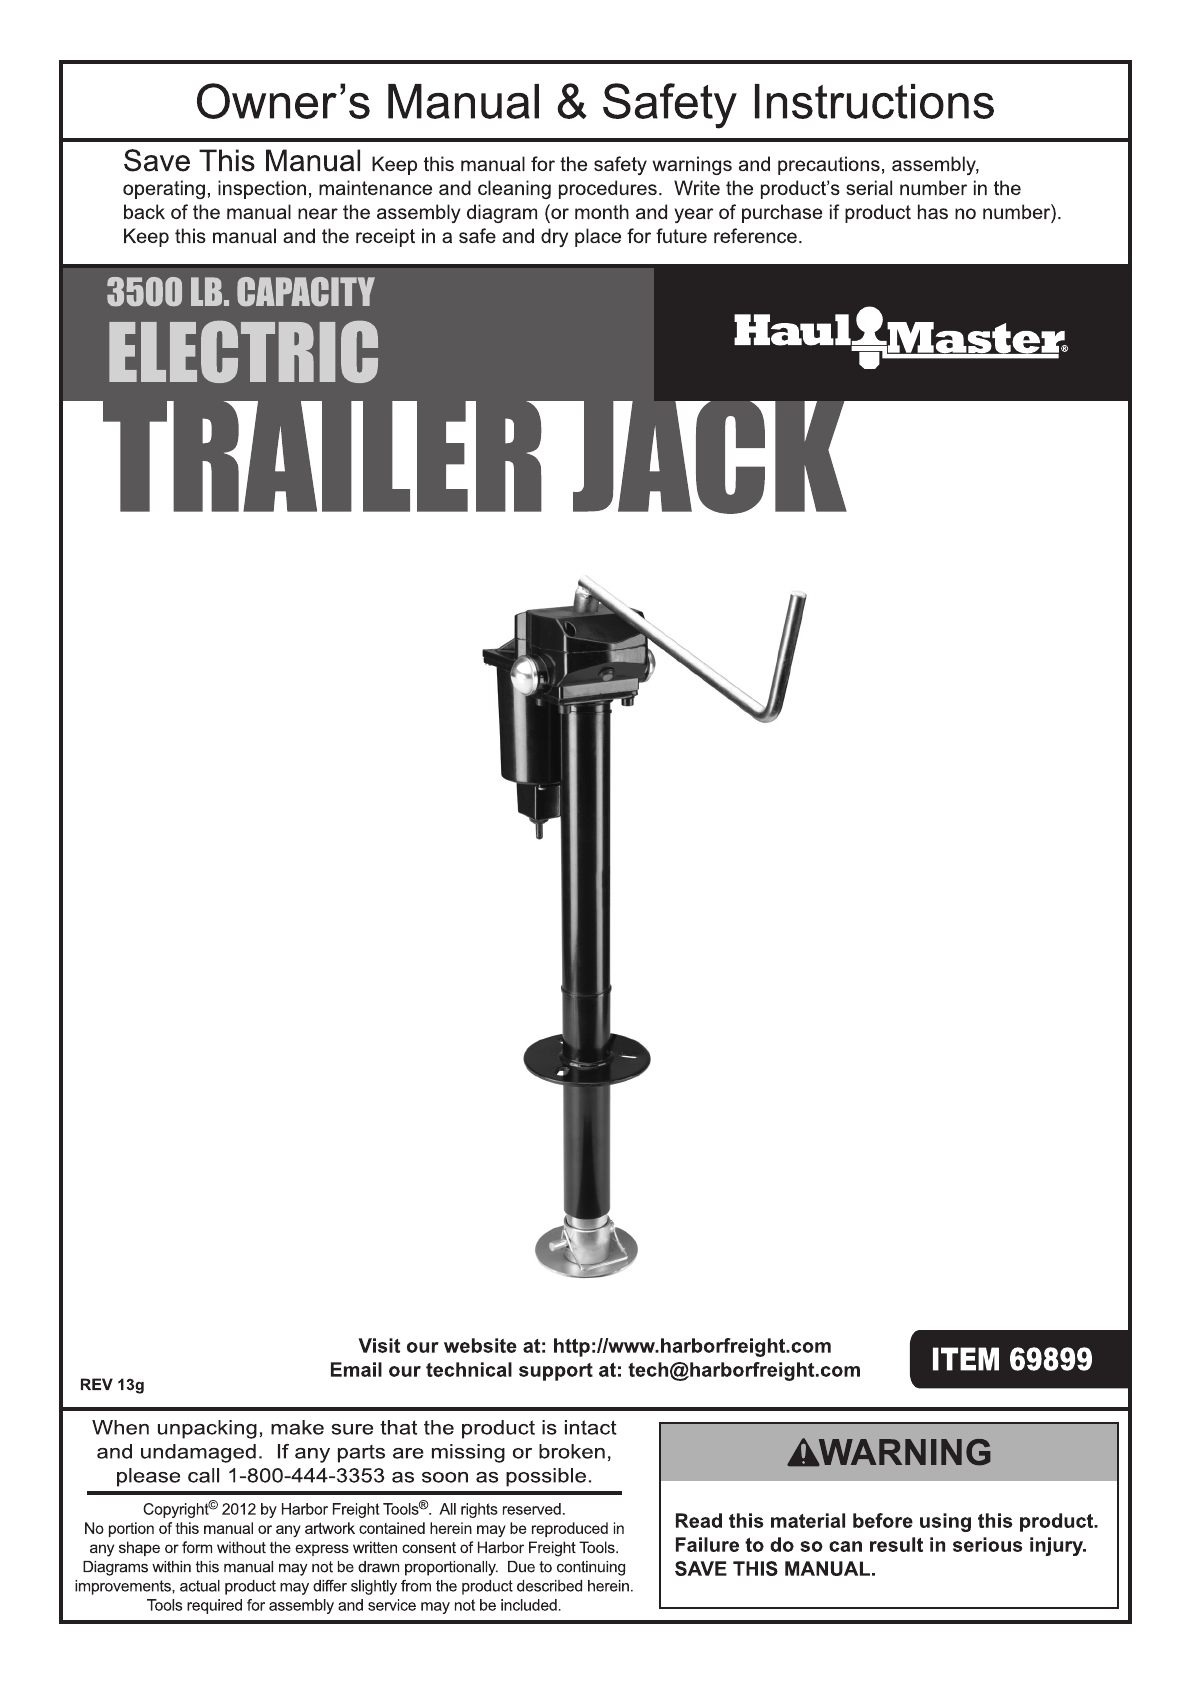 hight resolution of harbor freight 3500 lb capacity drop leg heavy duty electric trailer jack product manual